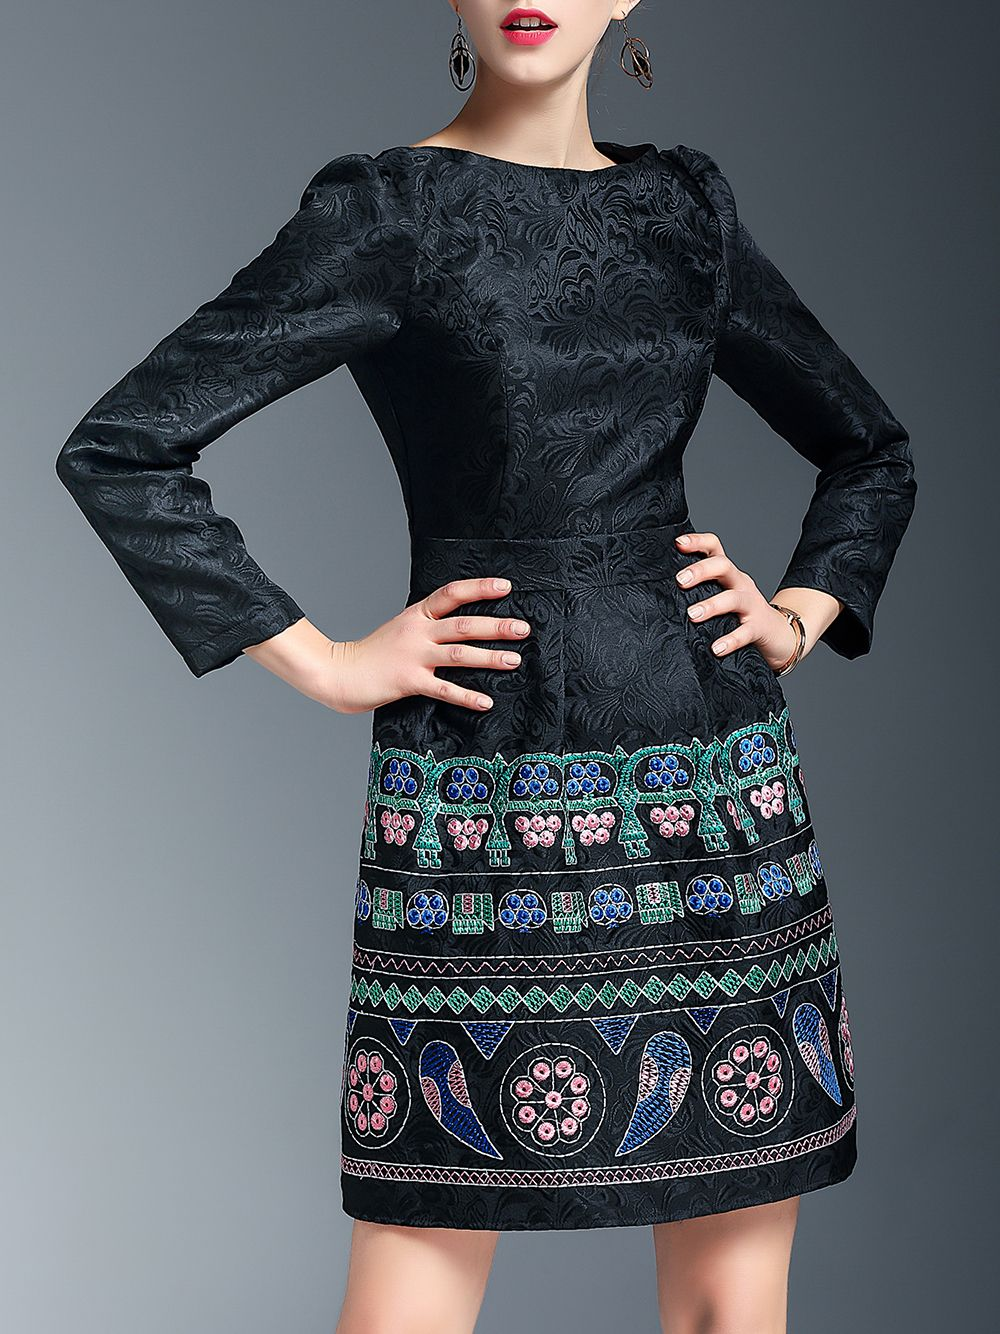 Buy it now black embroidered jacquard shift dress black round neck